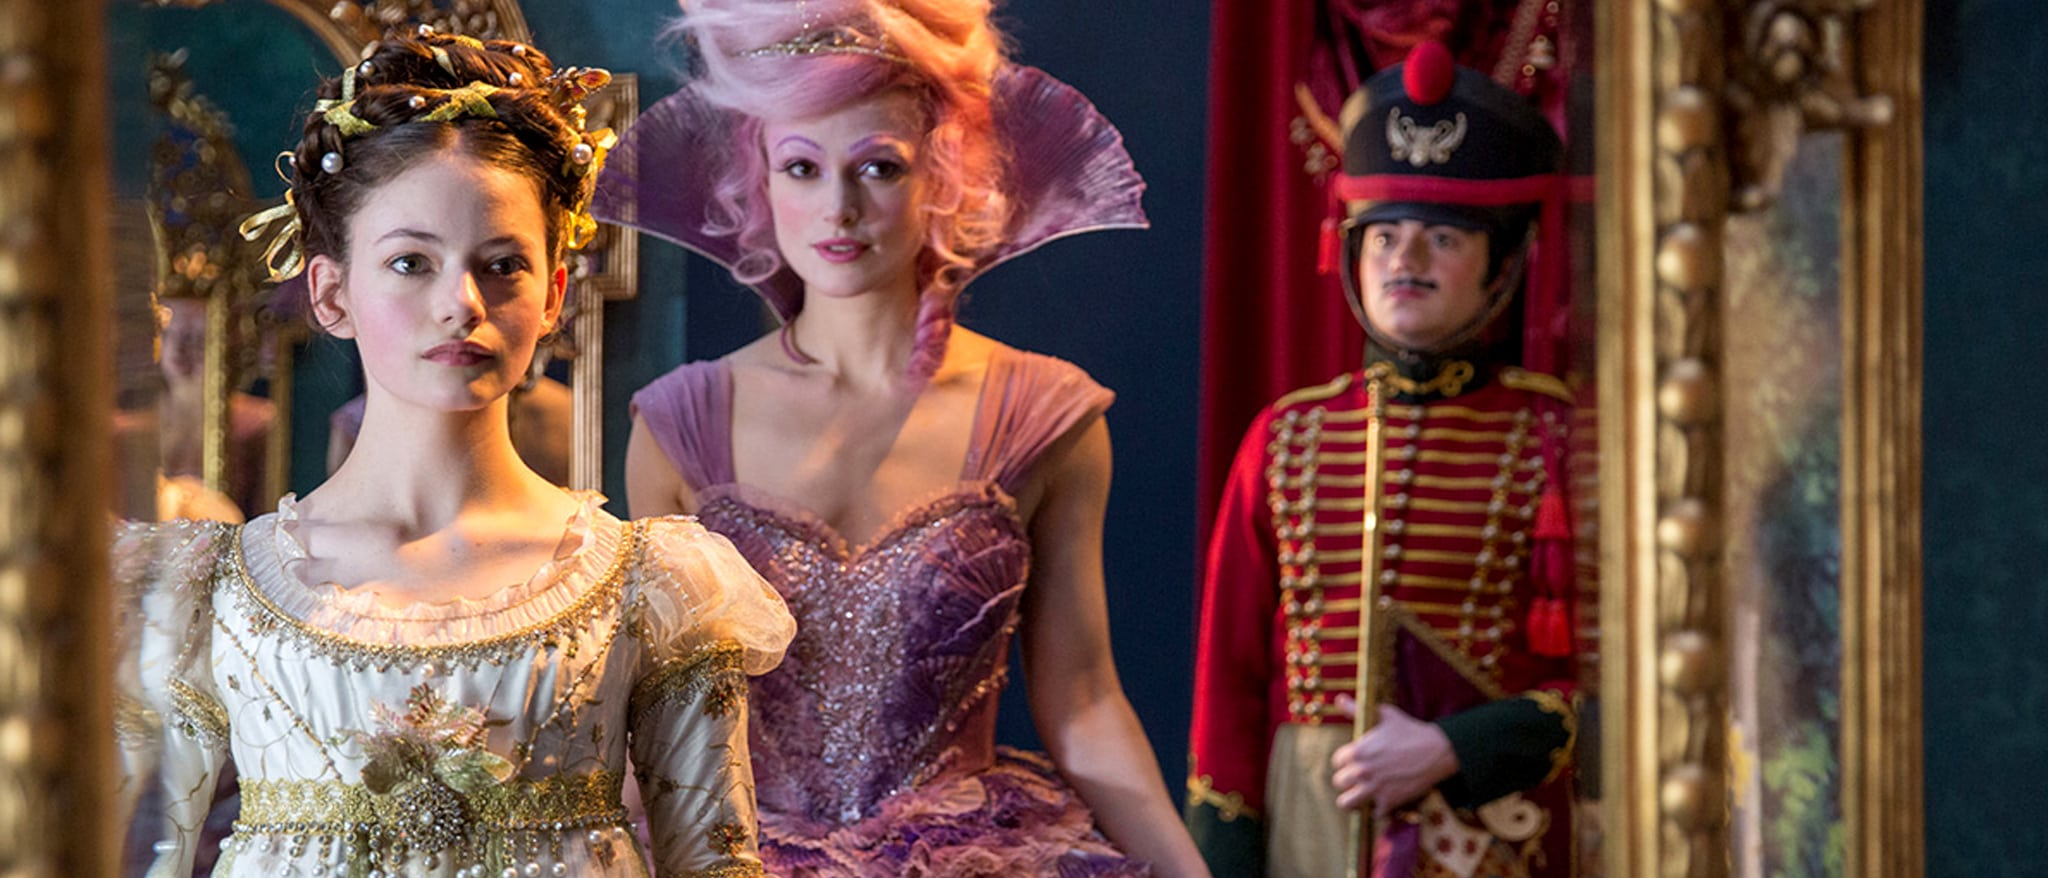 The Nutcracker and the Four Realms Hero